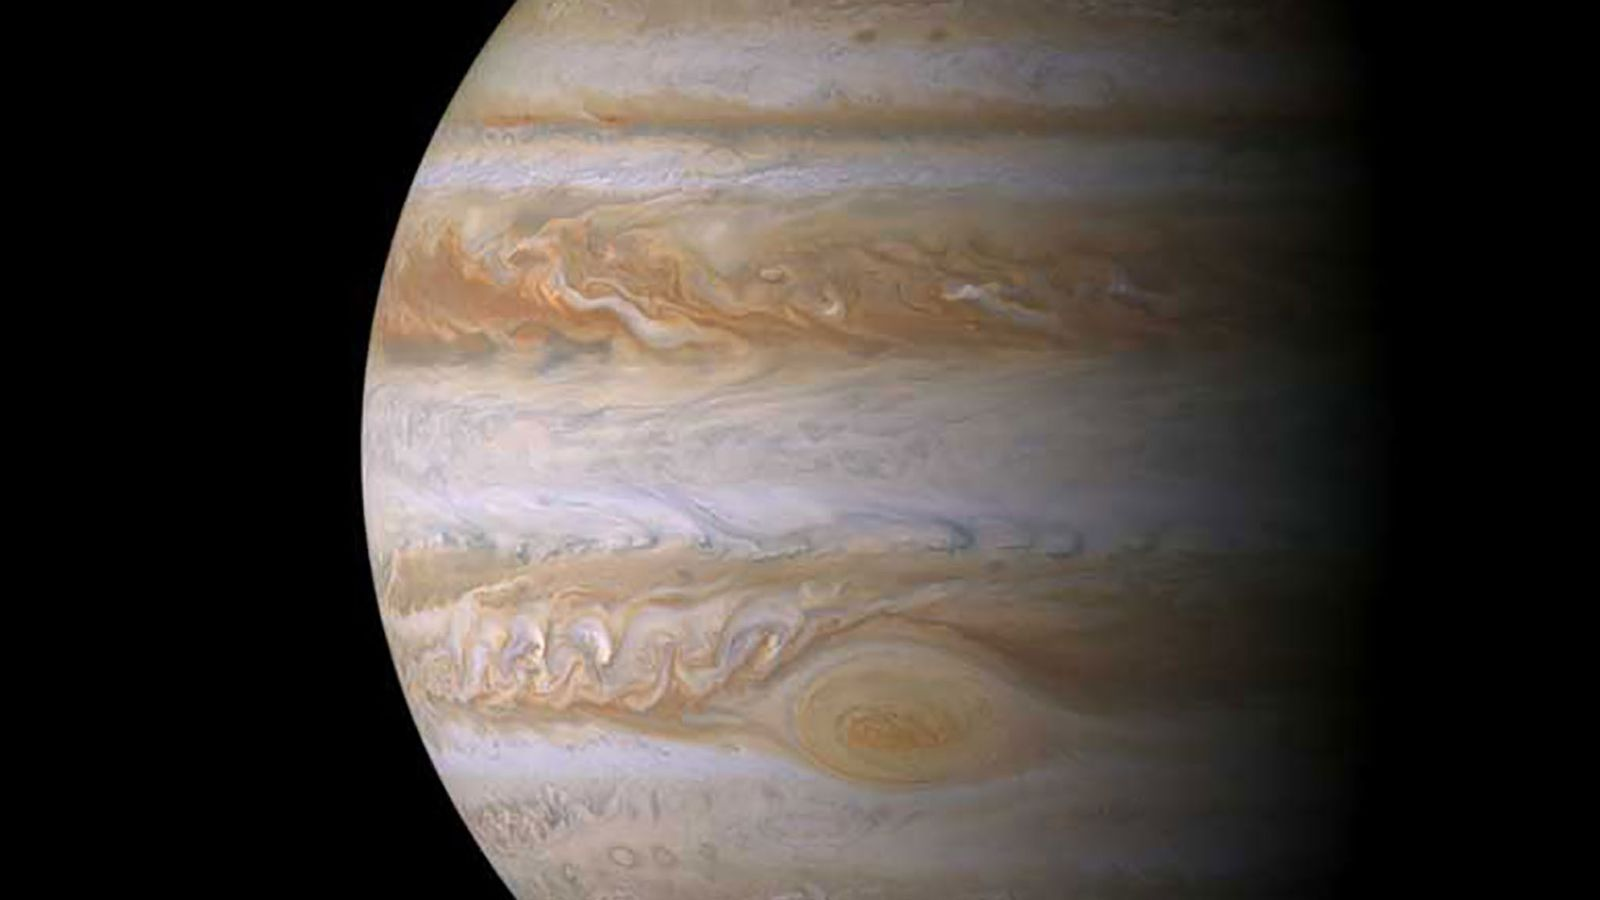 Cassini visited Jupiter on its way to Saturn, making its closest flyby in December 2000. This ...